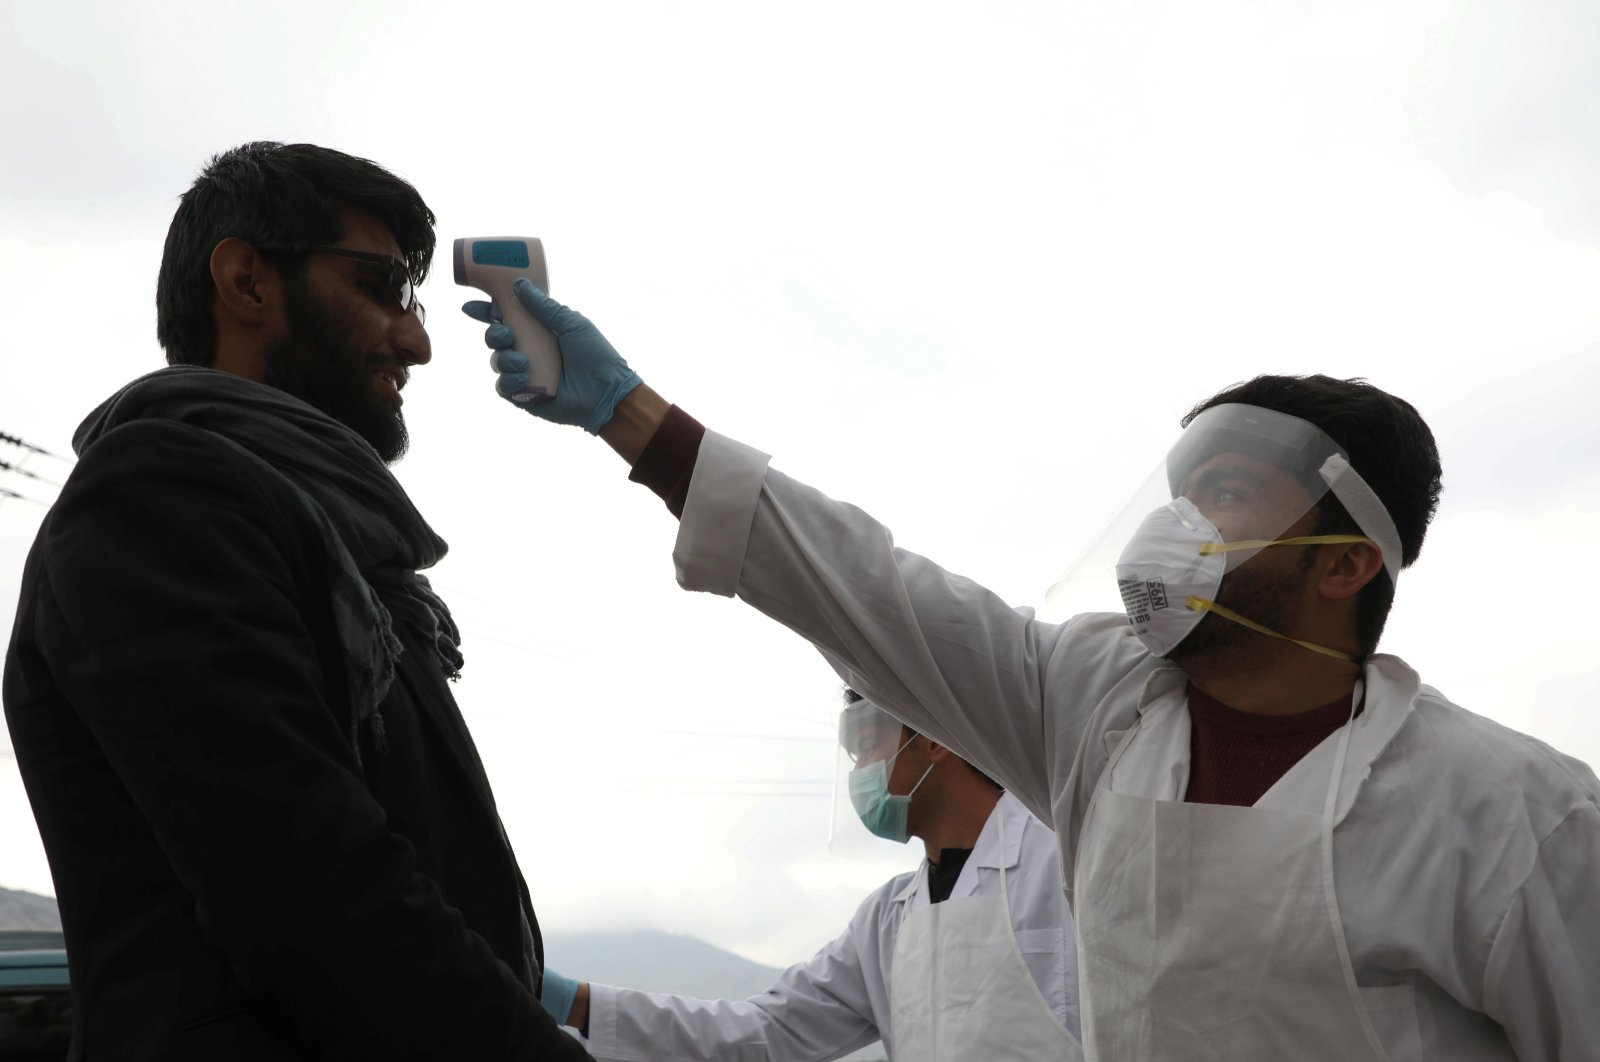 A medical official in protective gear checks the body temperature of a traveller, who arrives from provinces, amid concerns about the spread of coronavirus disease (COVID-19), in Kabul, Afghanistan March 24, 2020. (Reuters Photo)